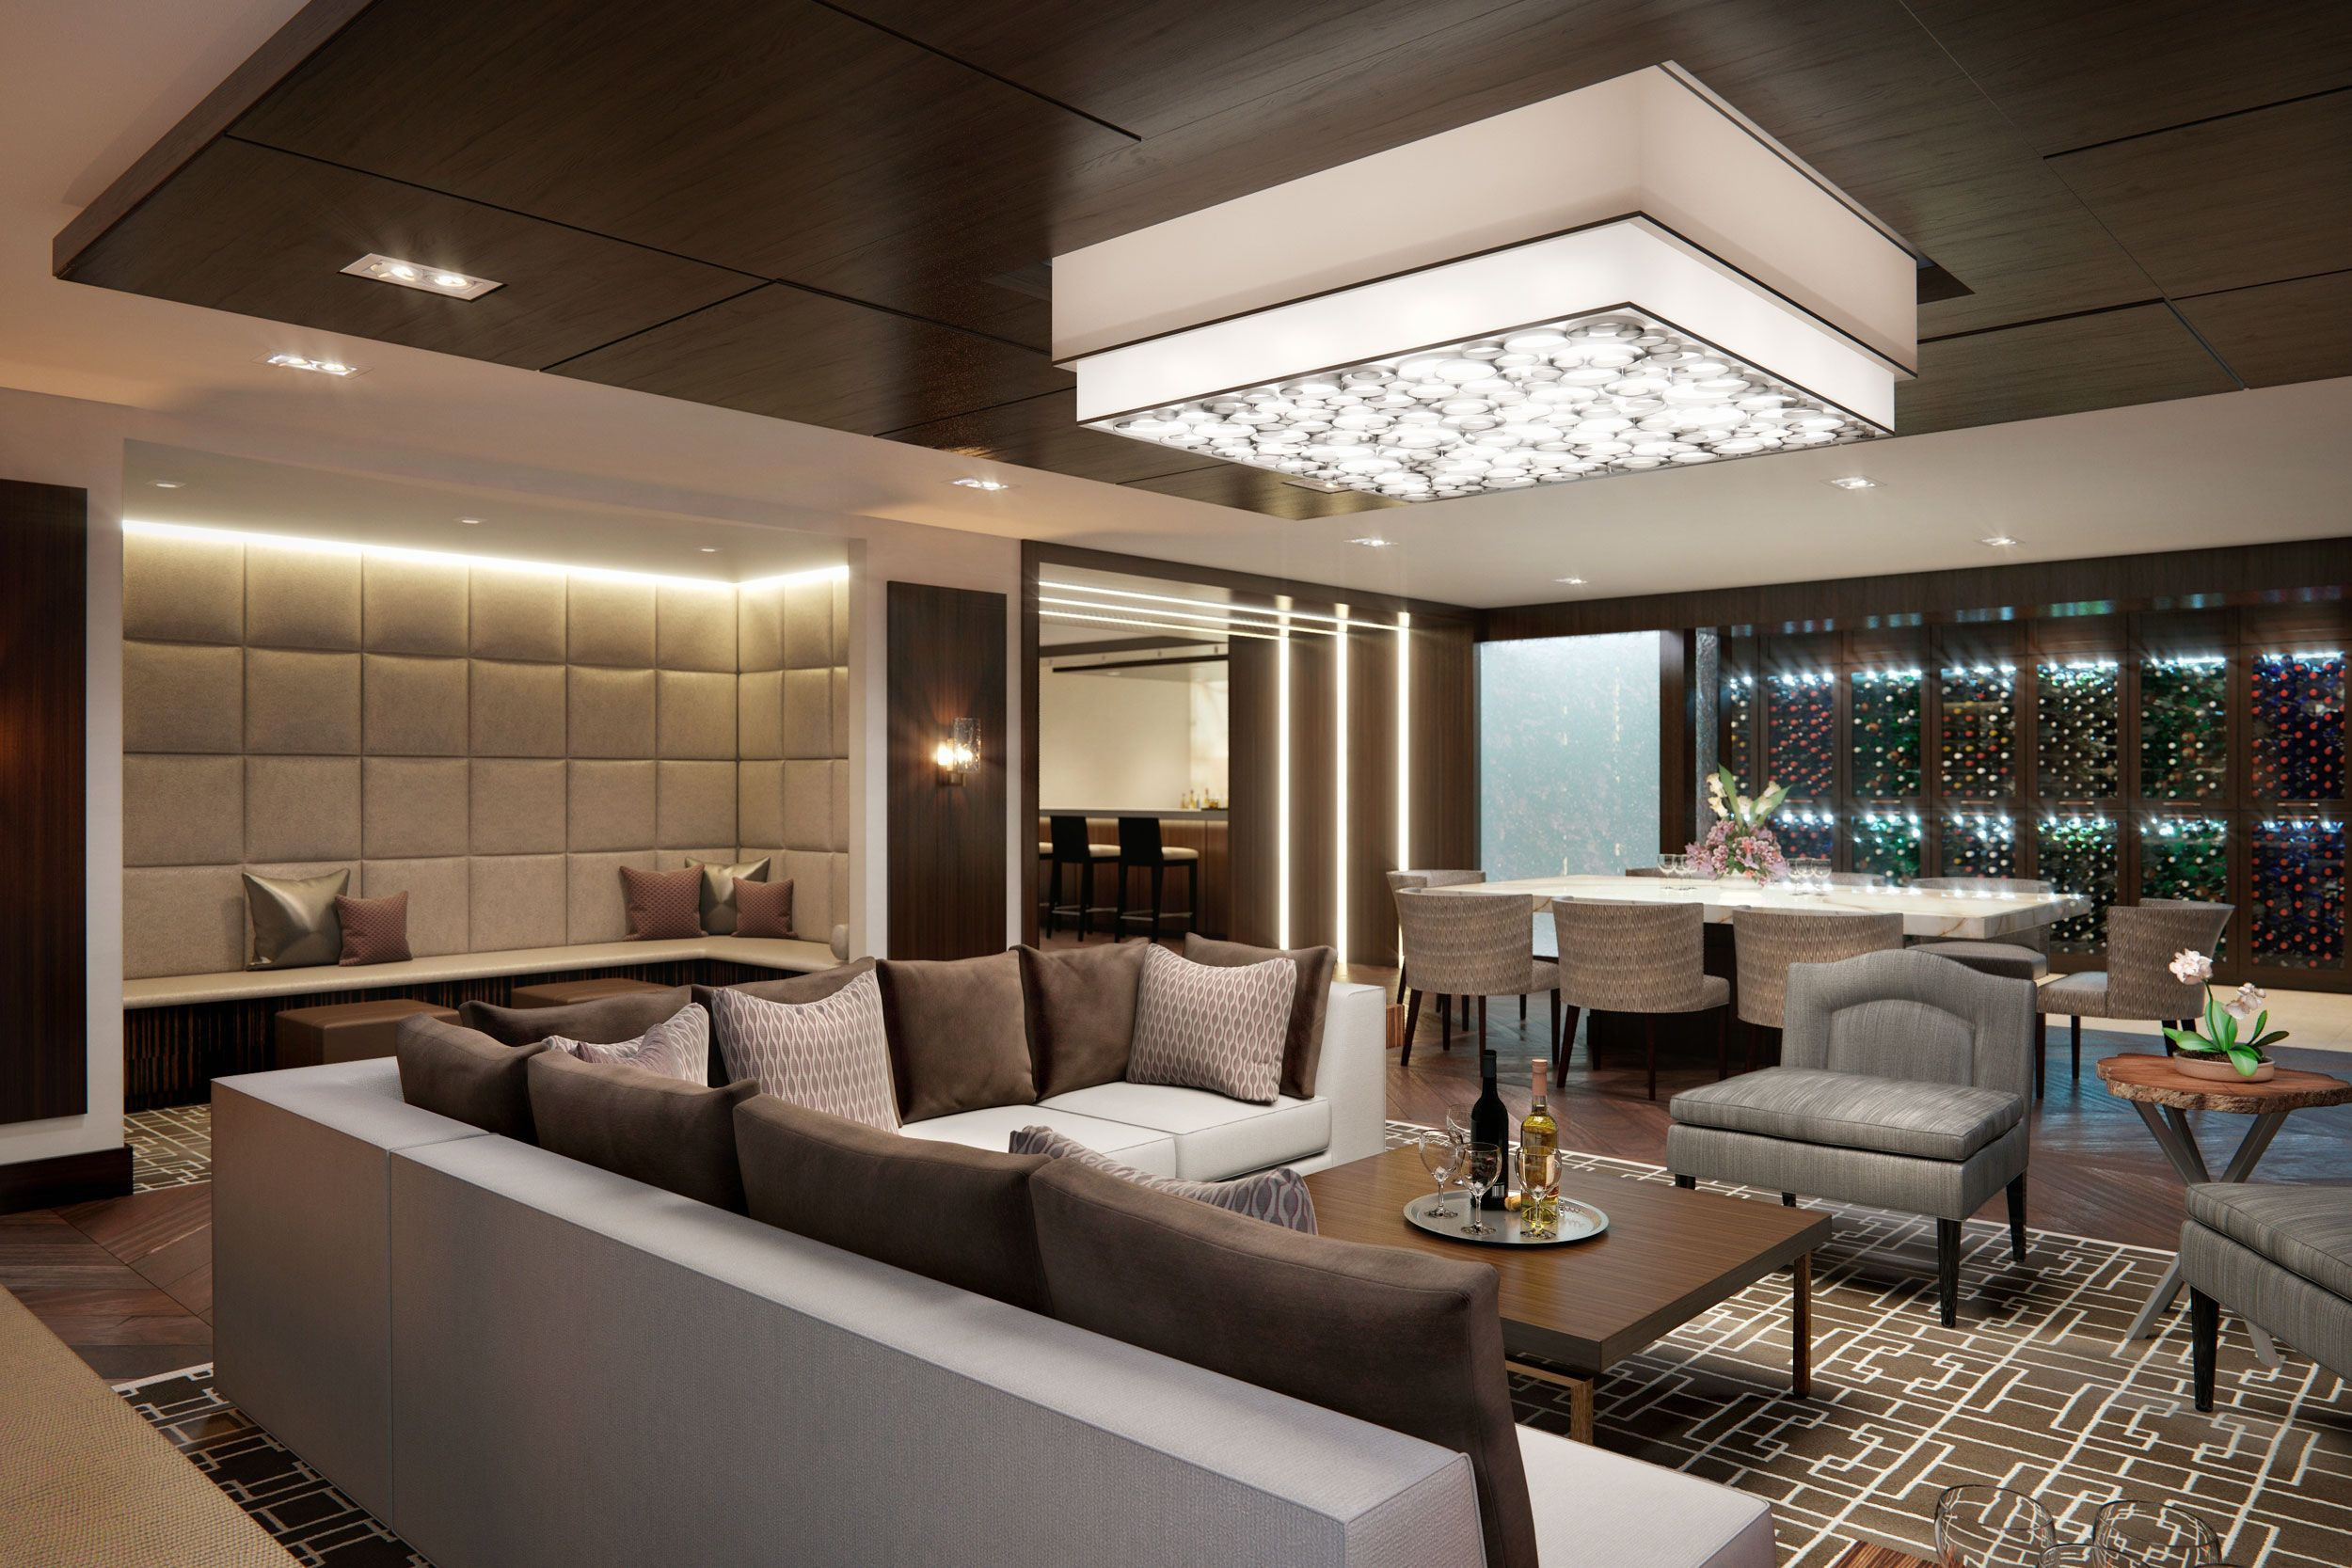 The Lauren Residences Features Direct Access Elevators Nine And Ten Foot Ceilings Private Roo Condo Interior Design Condo Interior Condo Interior Design Small